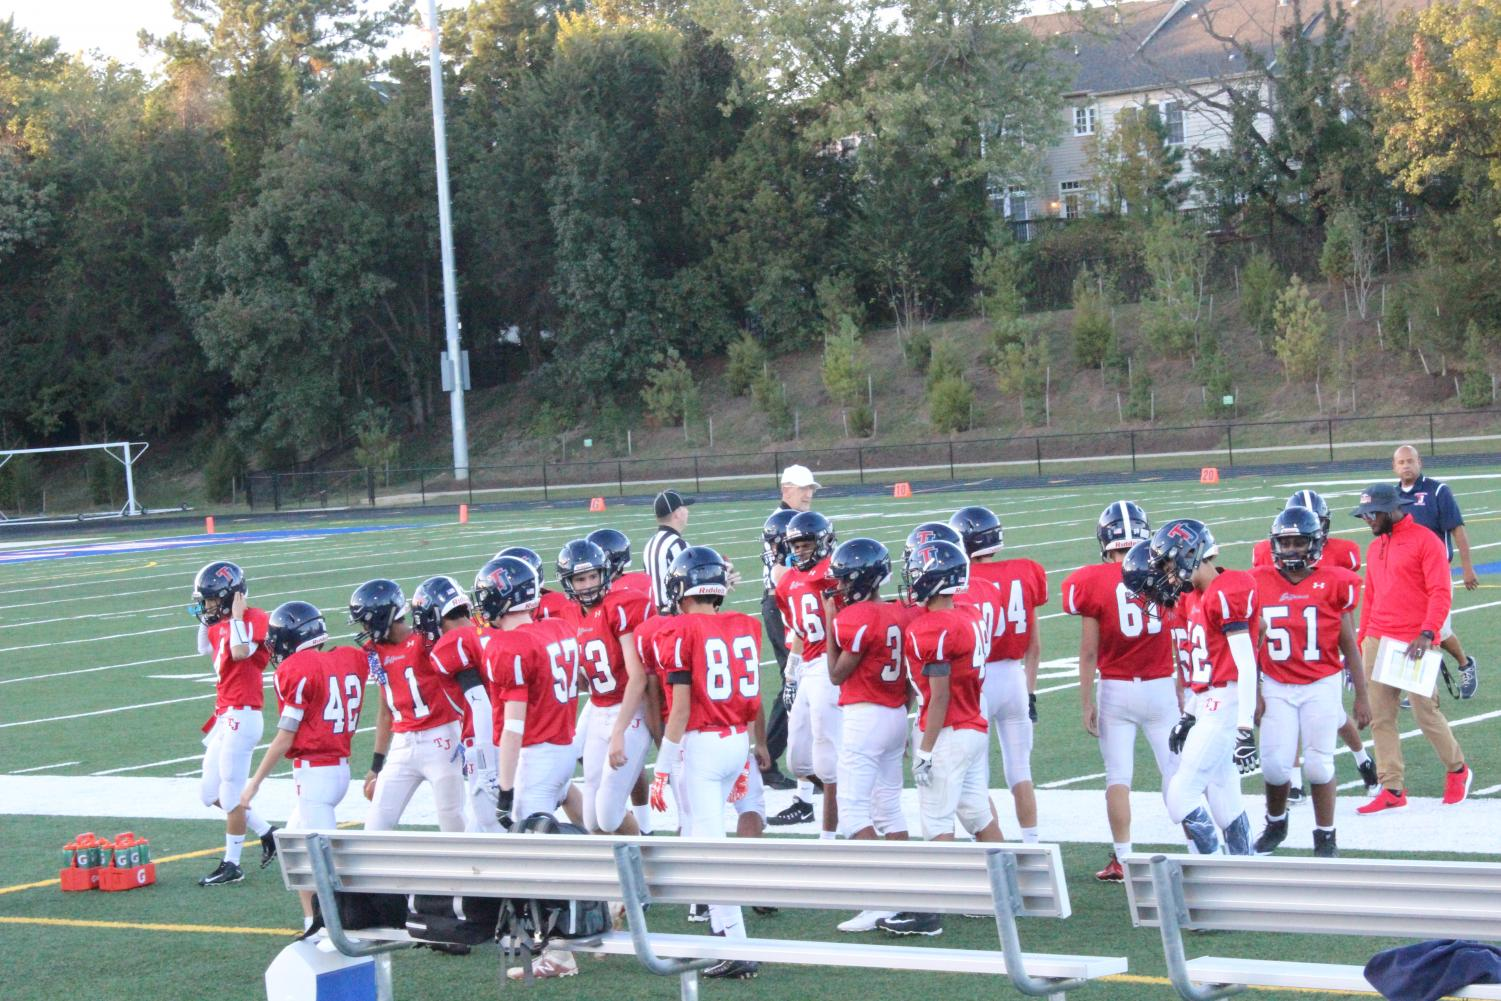 The JV football team meets up before the start of the game against JEB Stuart on Oct. 19.